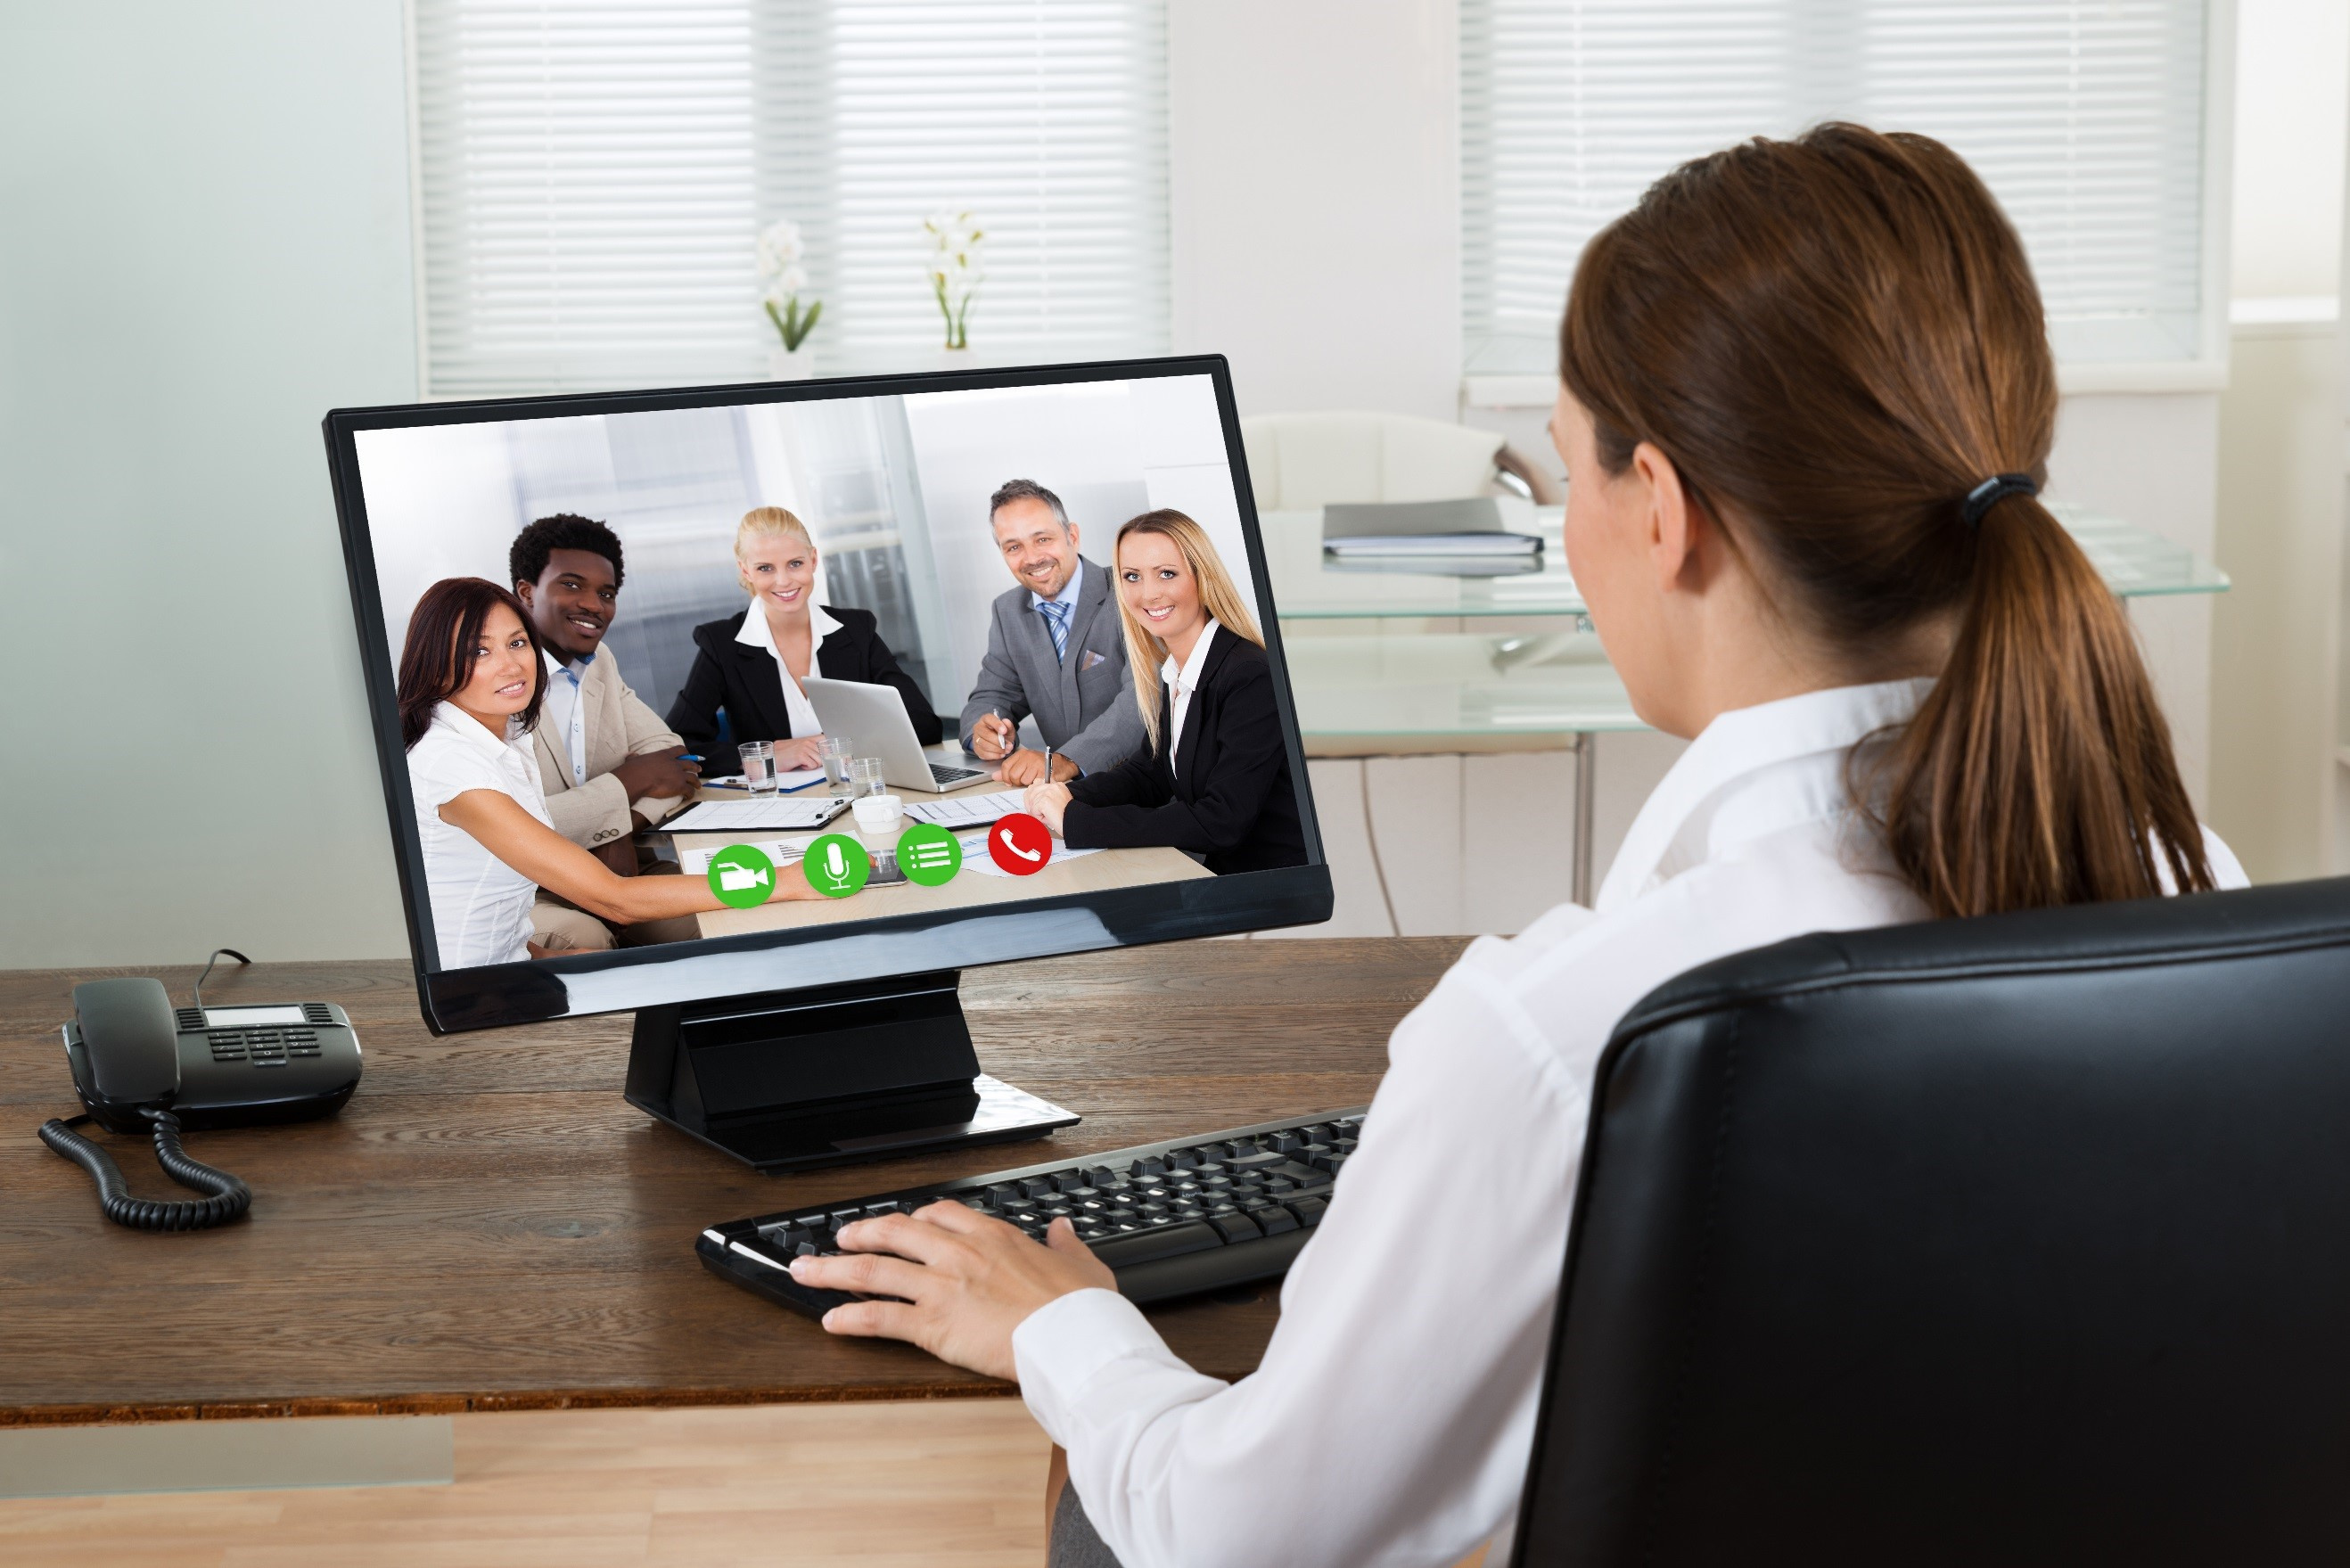 Top Tips to Help Master a Phone and Video Interview